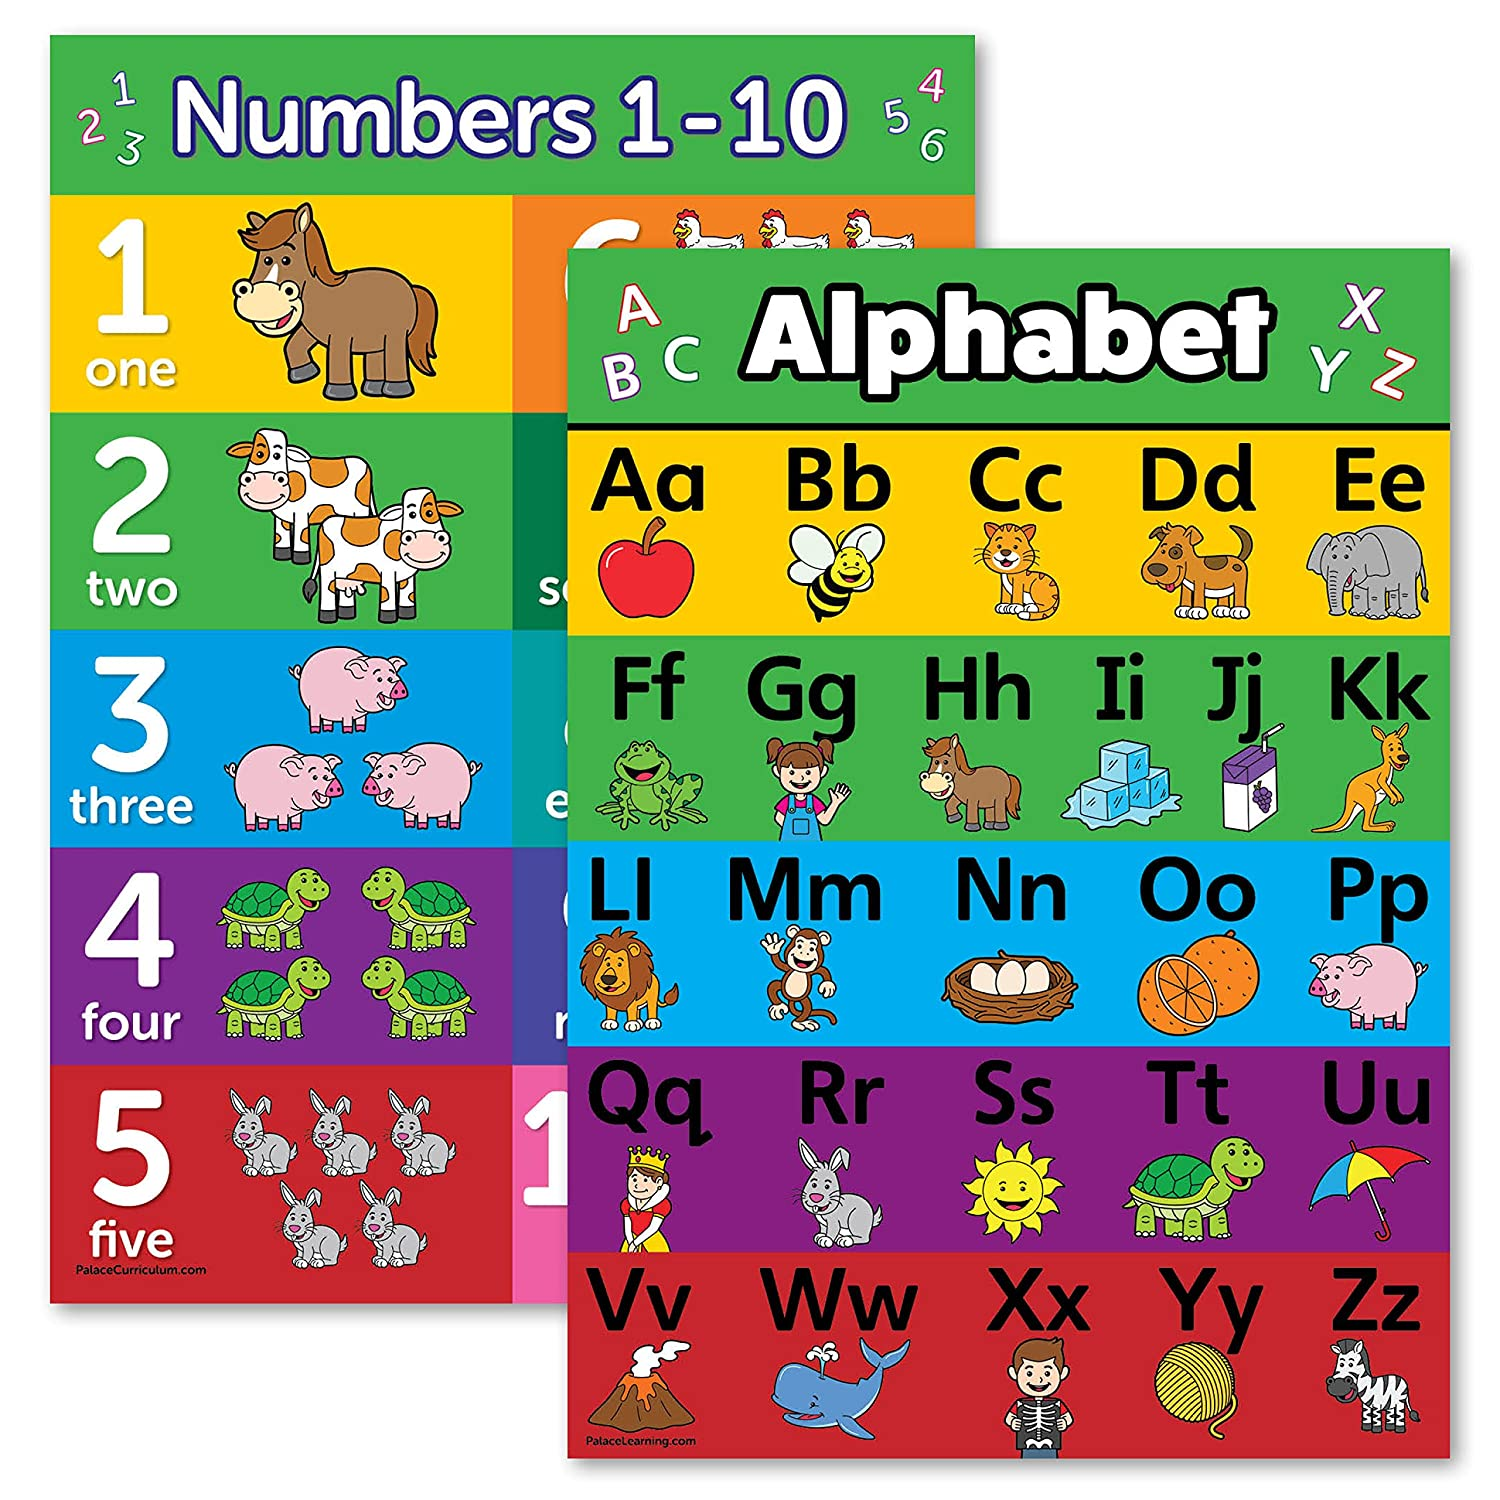 Amazon.com : ABC Alphabet & Numbers 1-10 Poster Chart Set ...